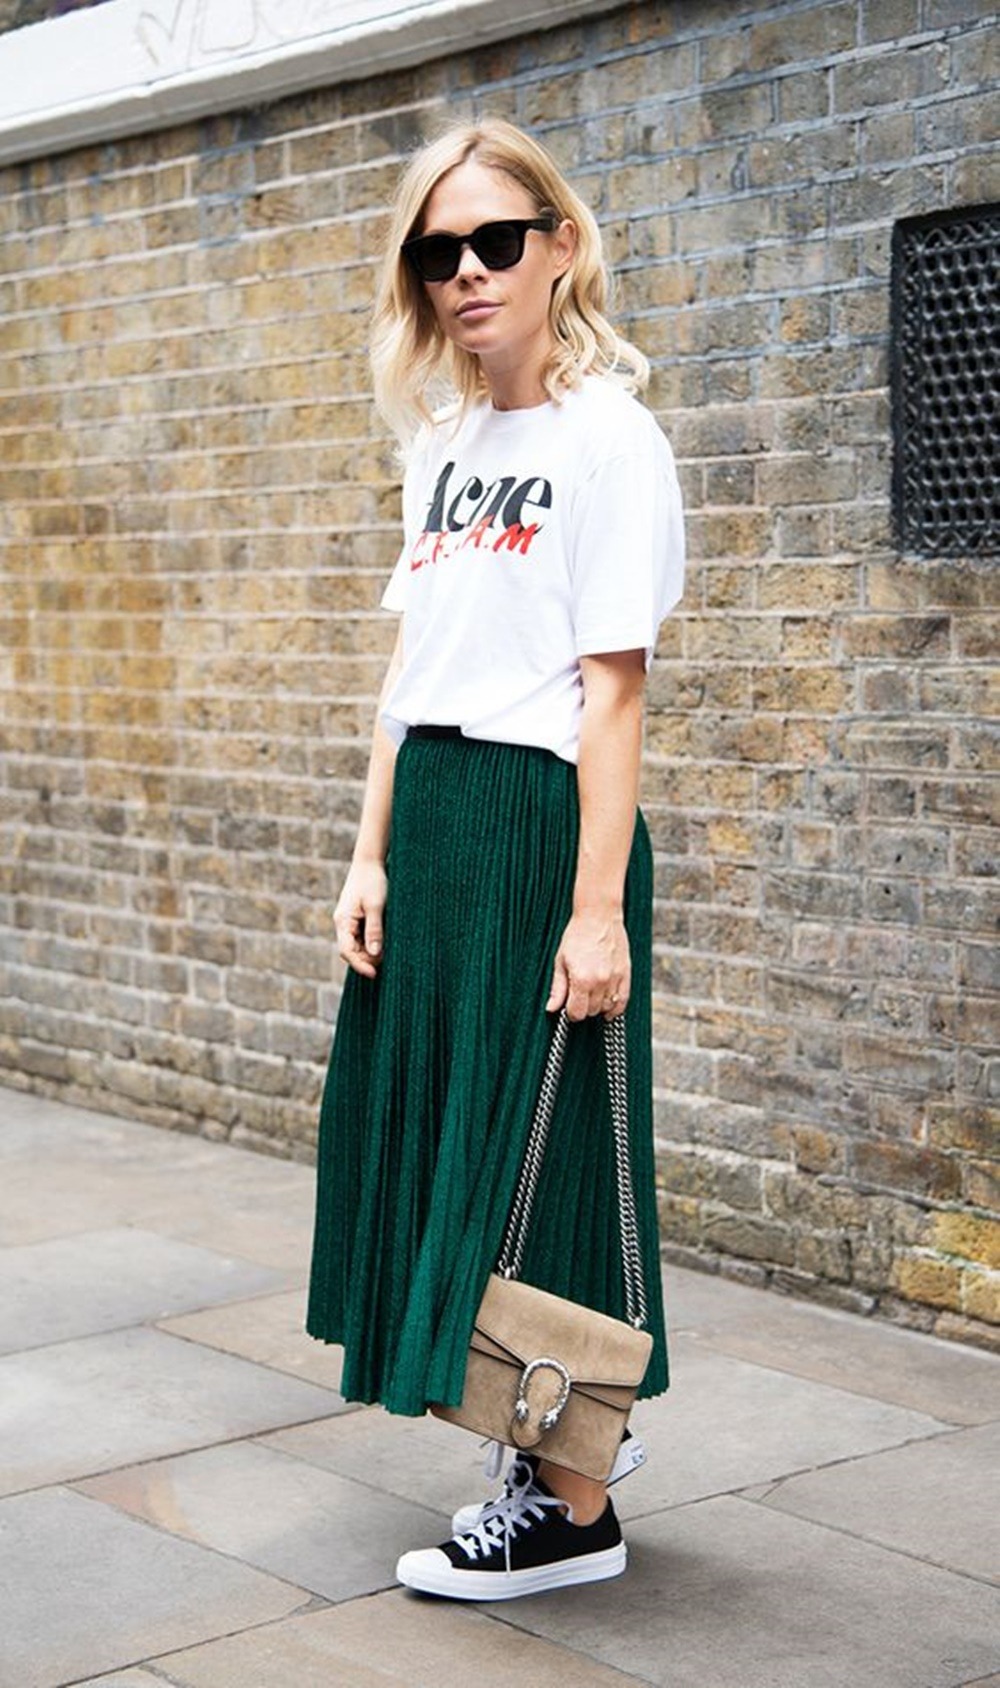 Skirt-and-T-shirt.-1 120+ Fashion Trends and Looks for College Students in 2020/2021